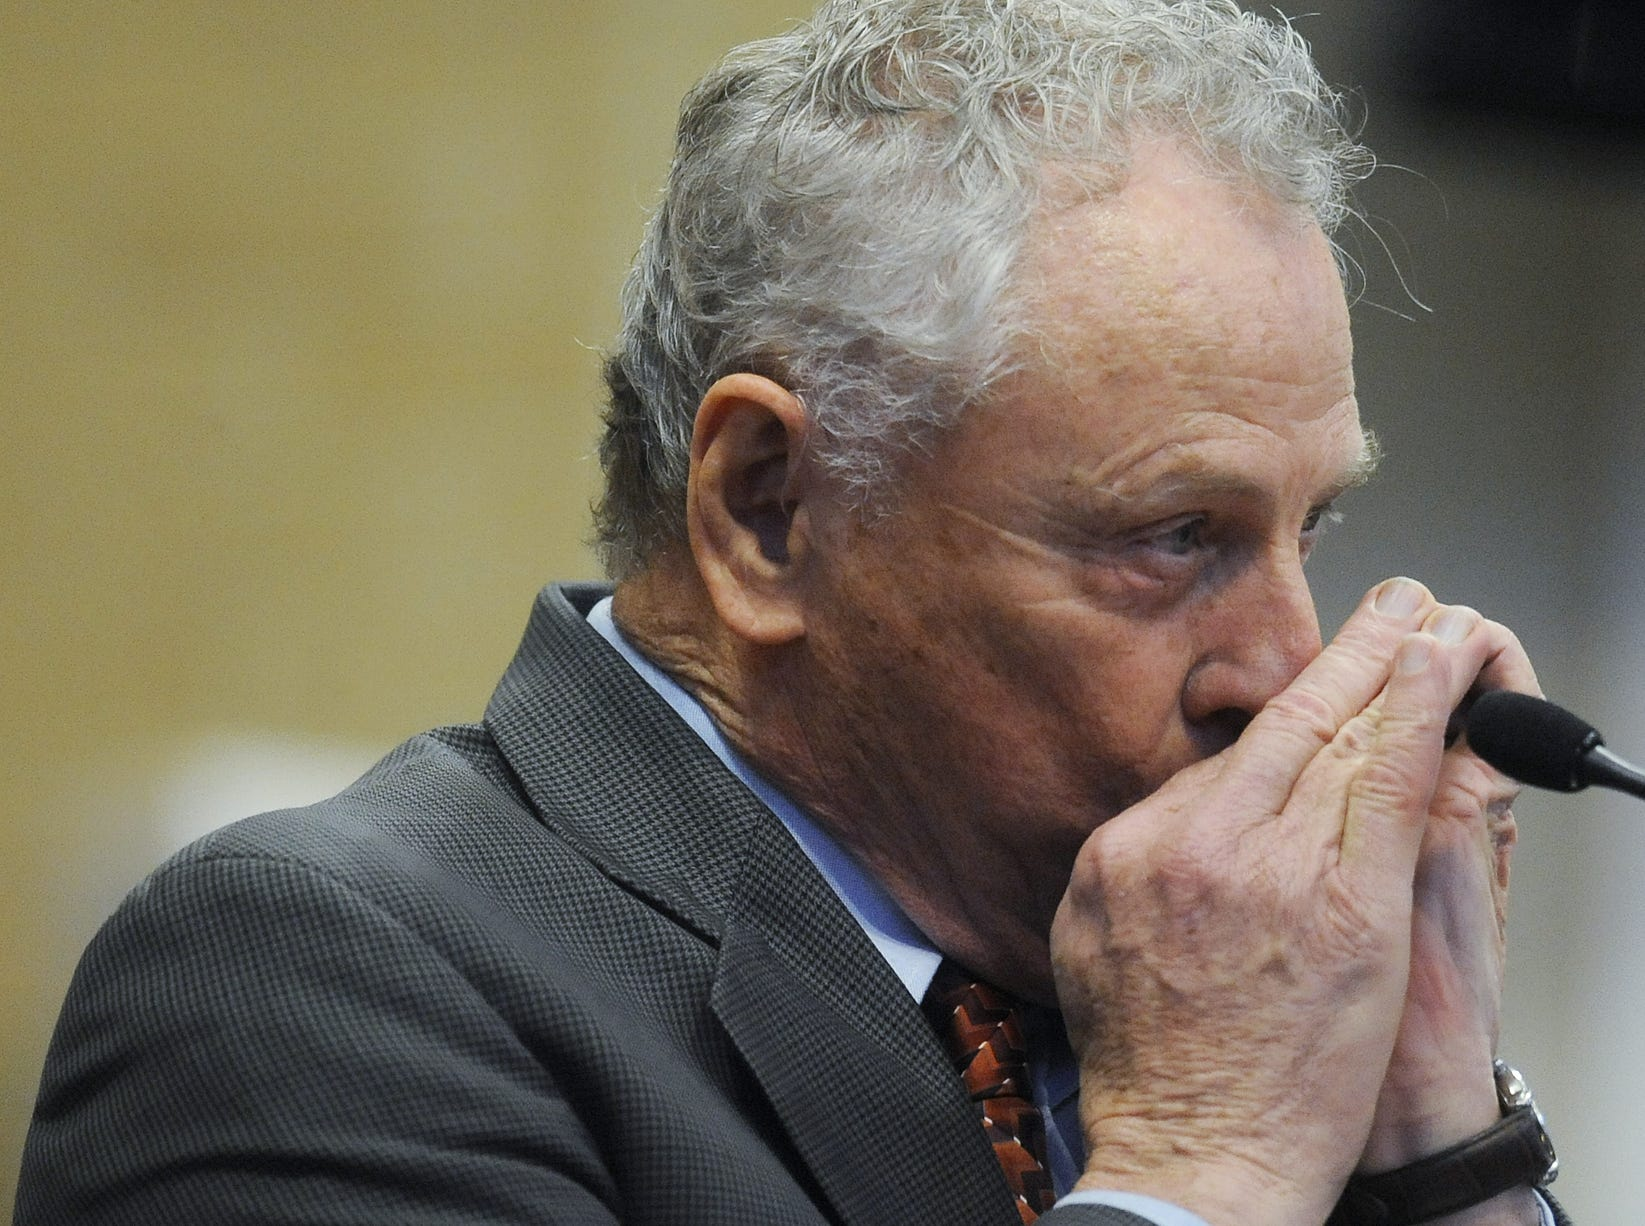 Morris Dees plays the harmonica during the memorial service for Nick LaTour at Hutchinson Missionary Baptist Church in Montgomery, Ala. on Saturday April 2, 2011. (Montgomery Advertiser, Mickey Welsh)